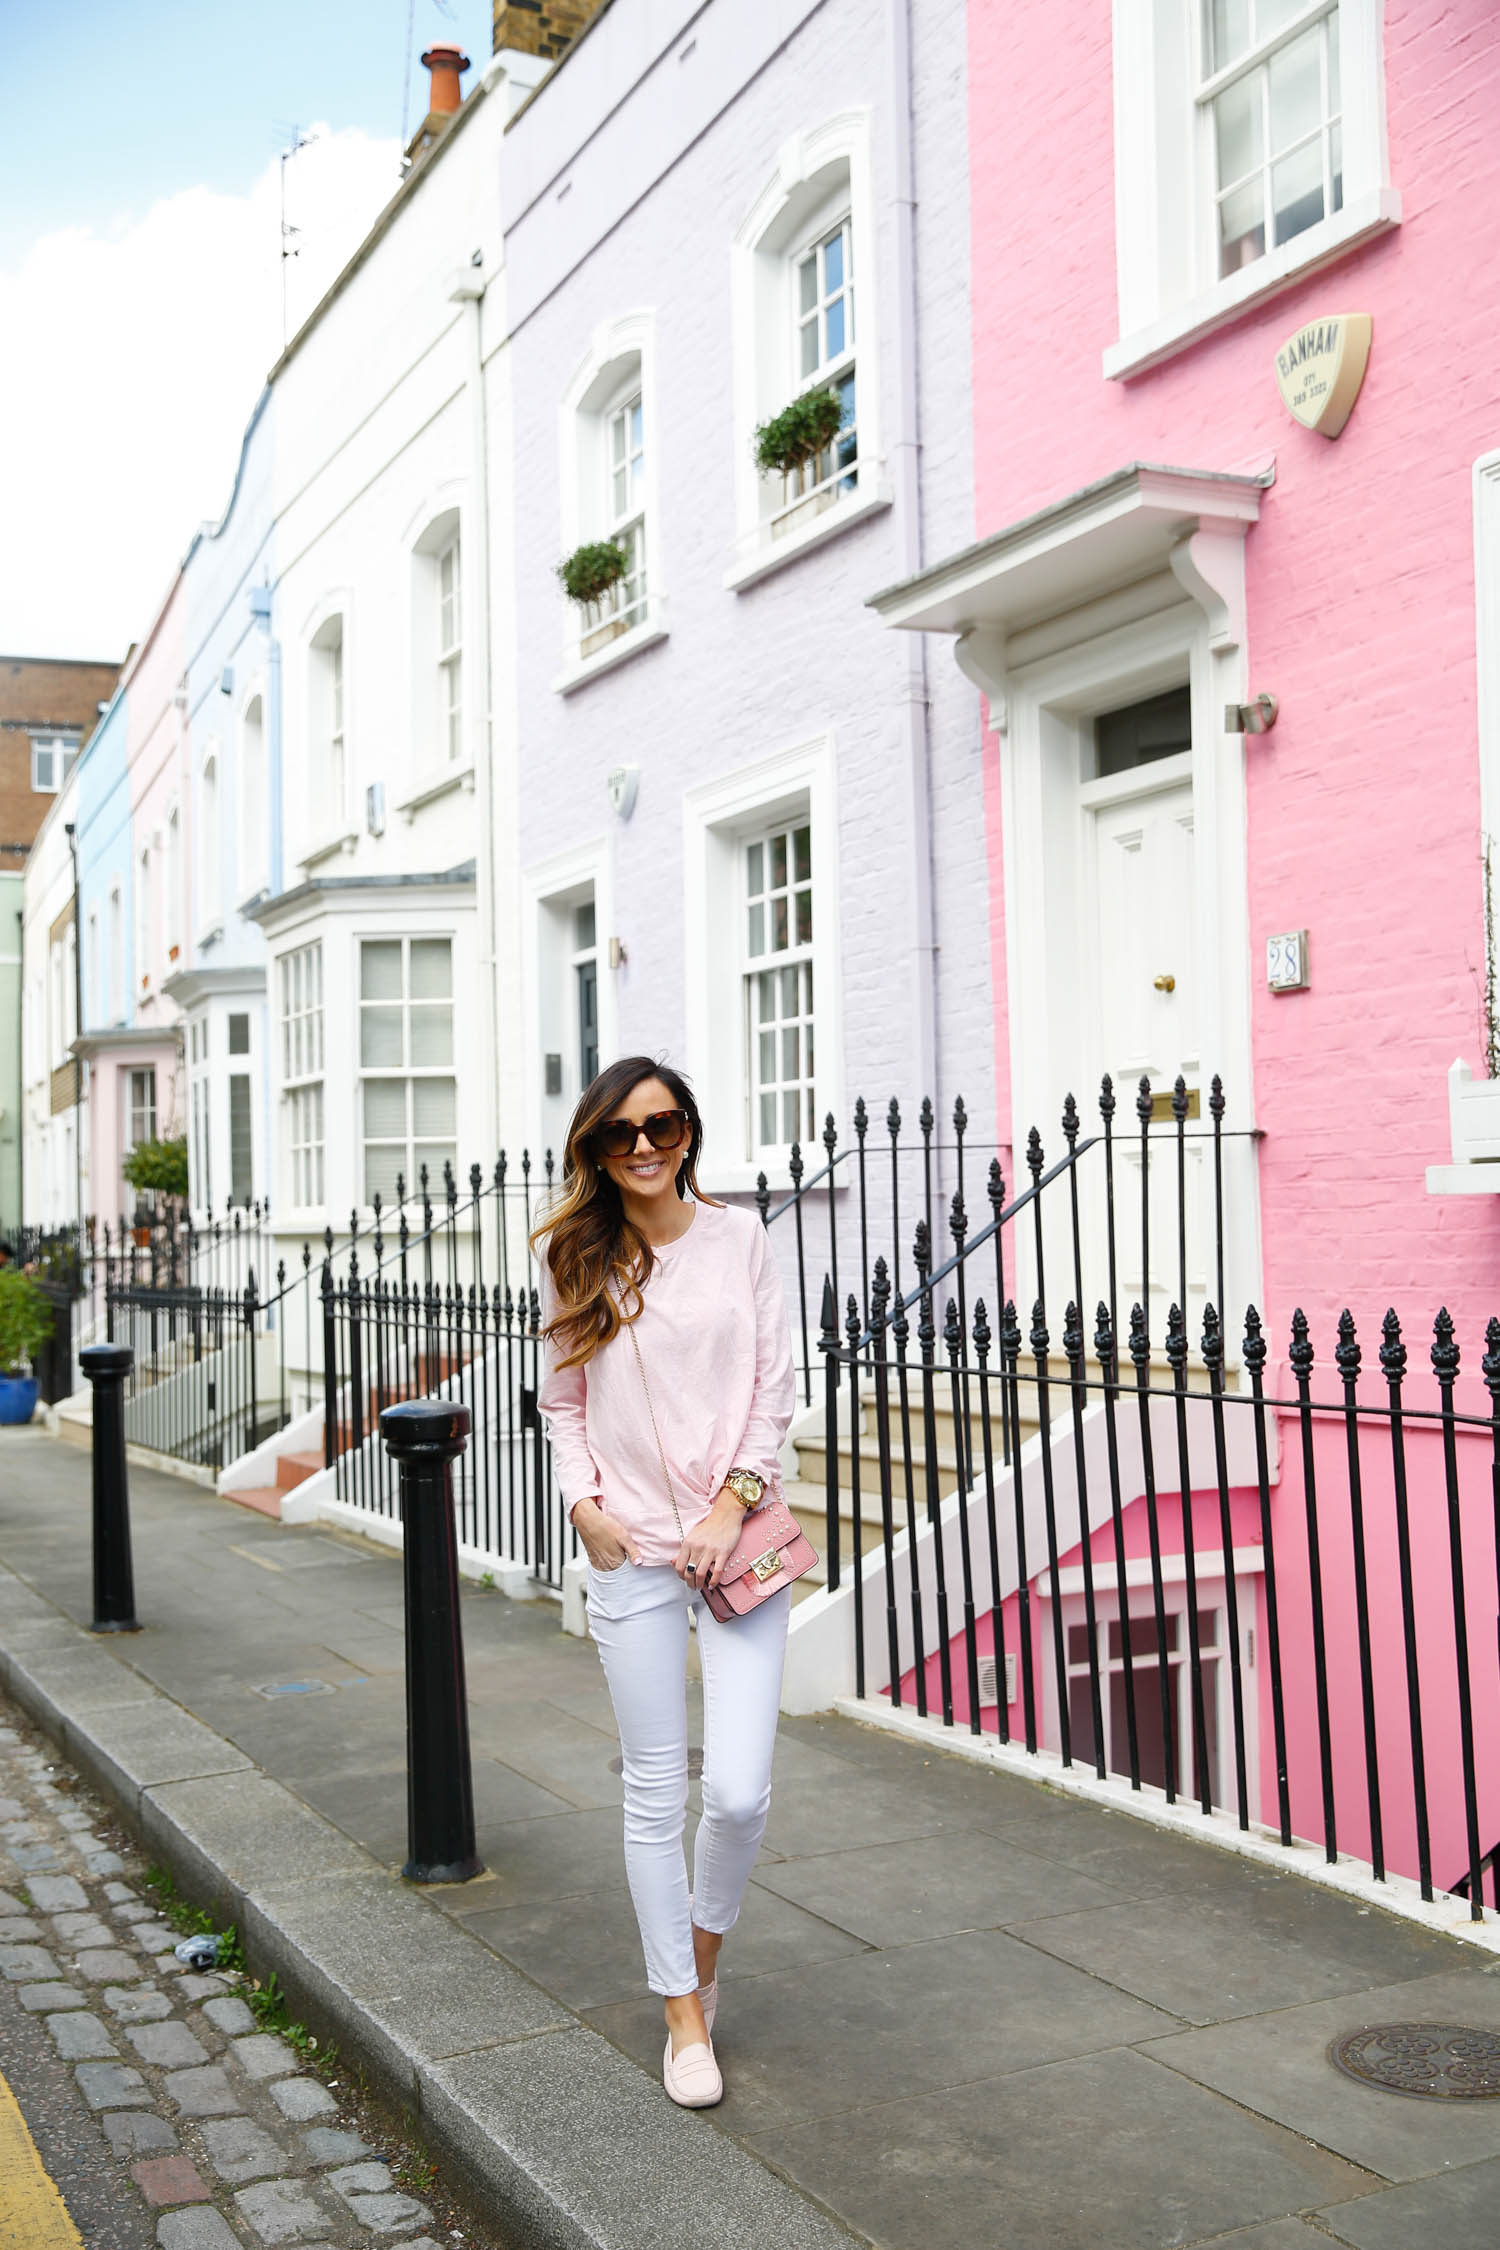 bywater street, chelsea, london, most instagrammable spots in london